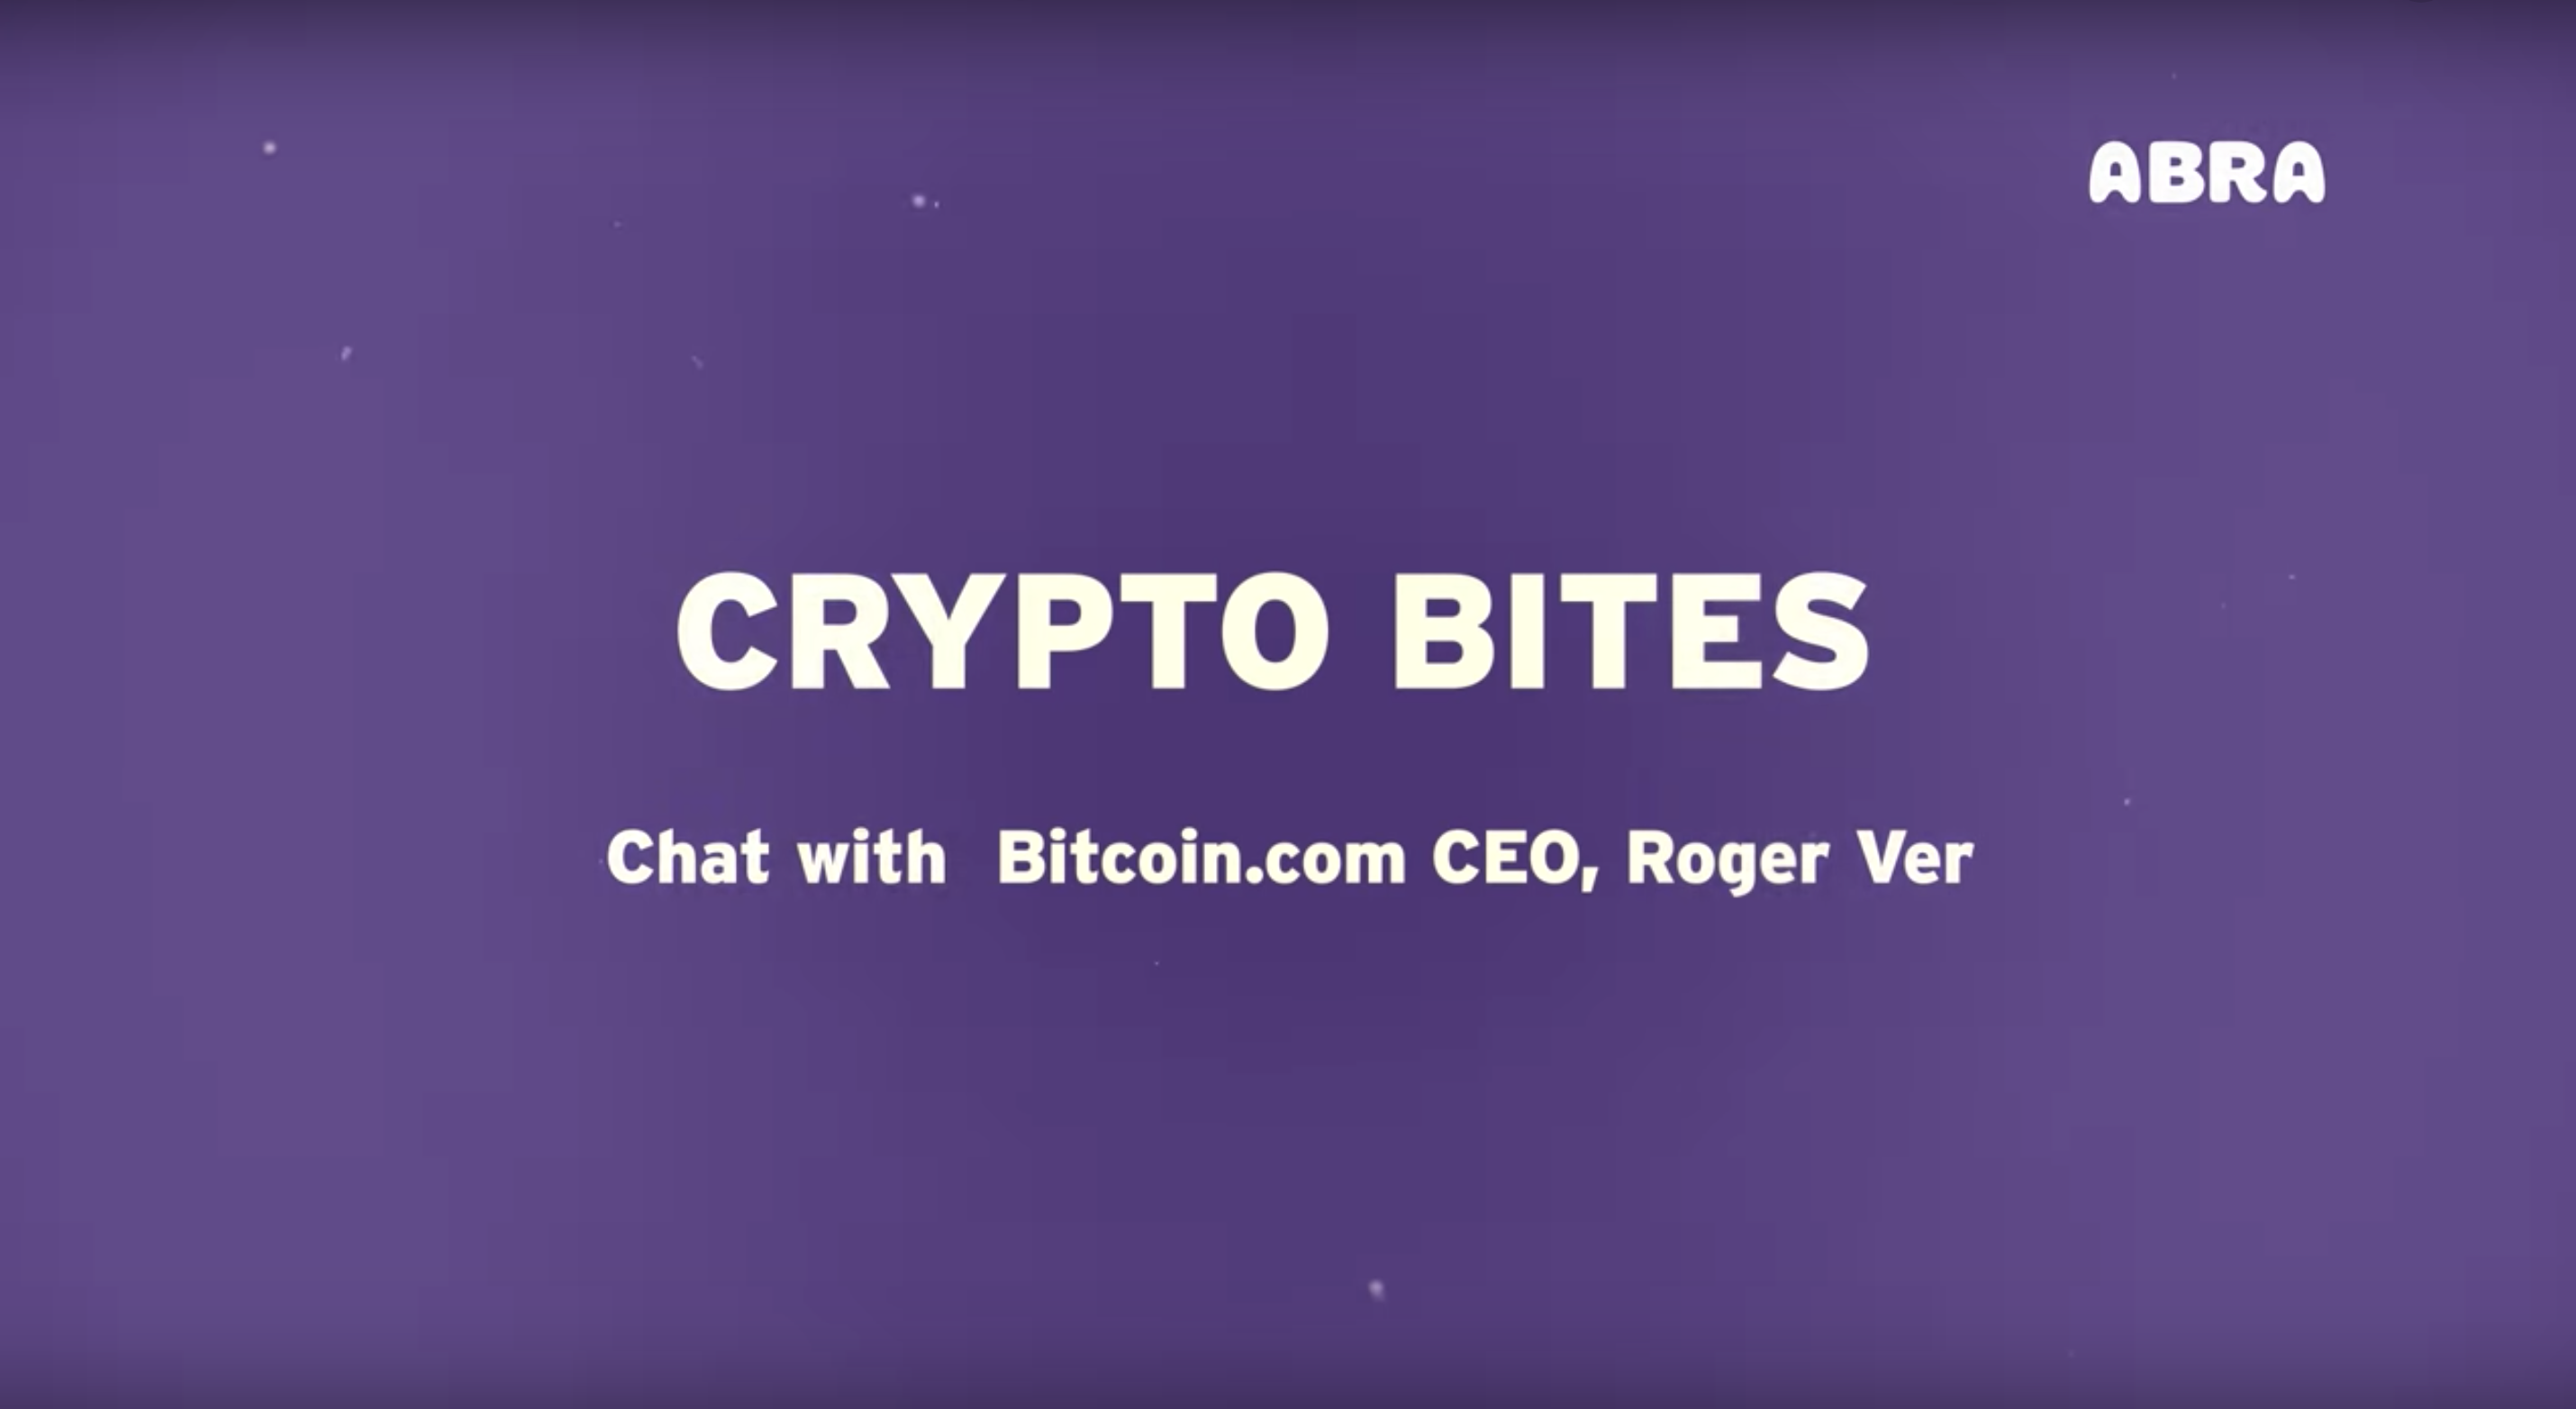 Crypto Bites: A chat with Bitcoin.com CEO Roger Ver